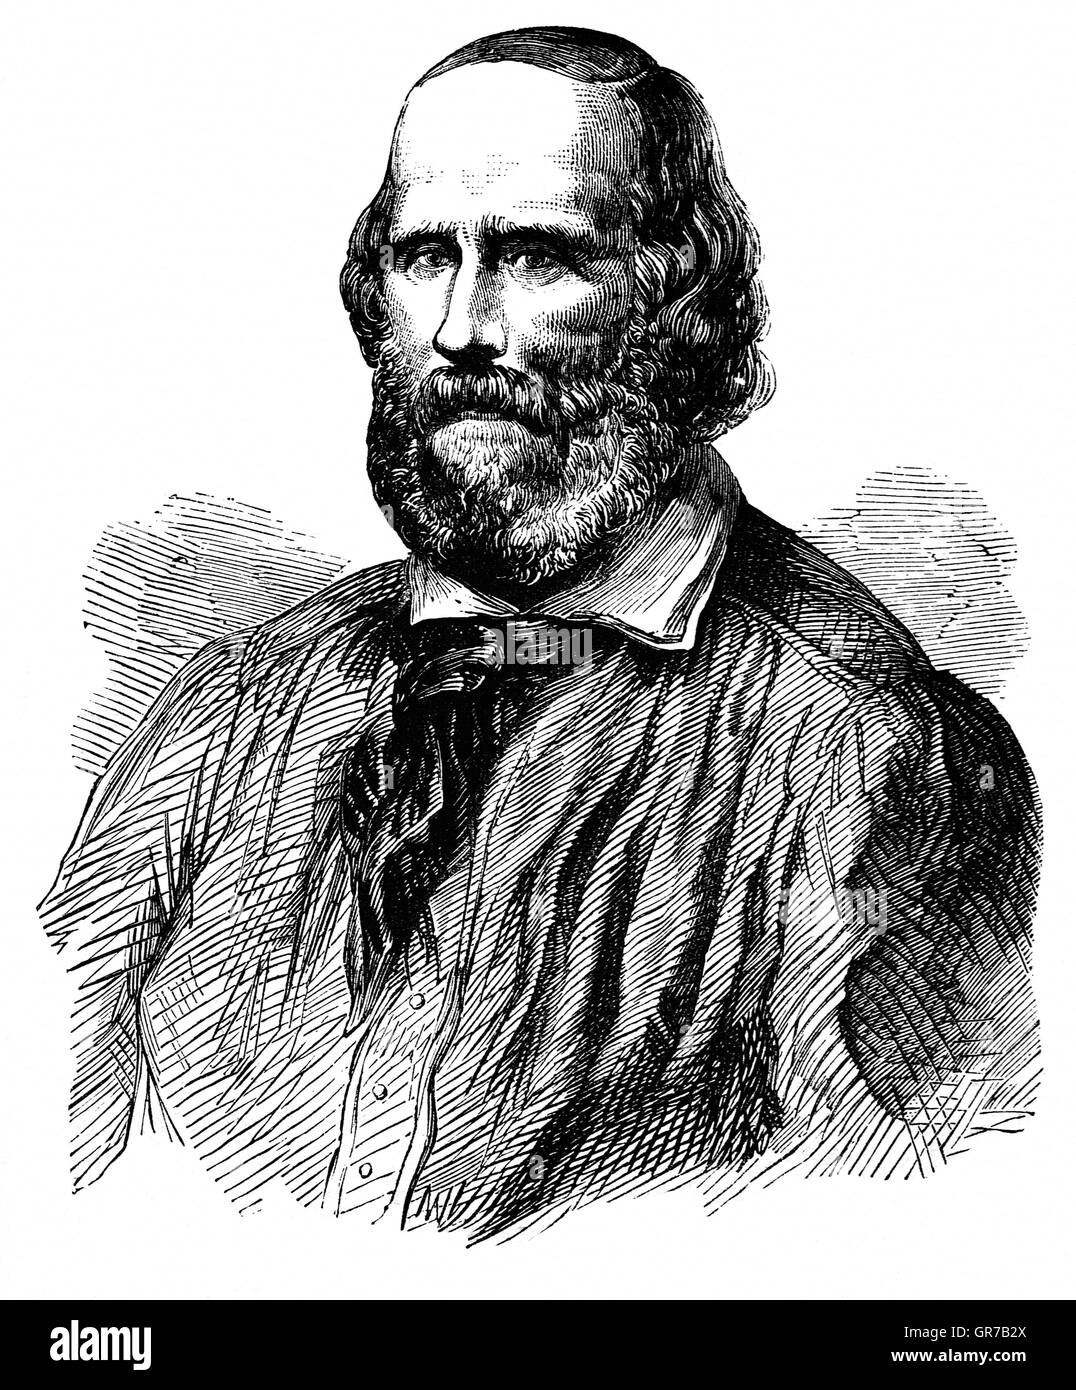 Giuseppe Garibaldi (1807 - 1882) was an Italian general, politician and nationalist who played a large role in the - Stock Image